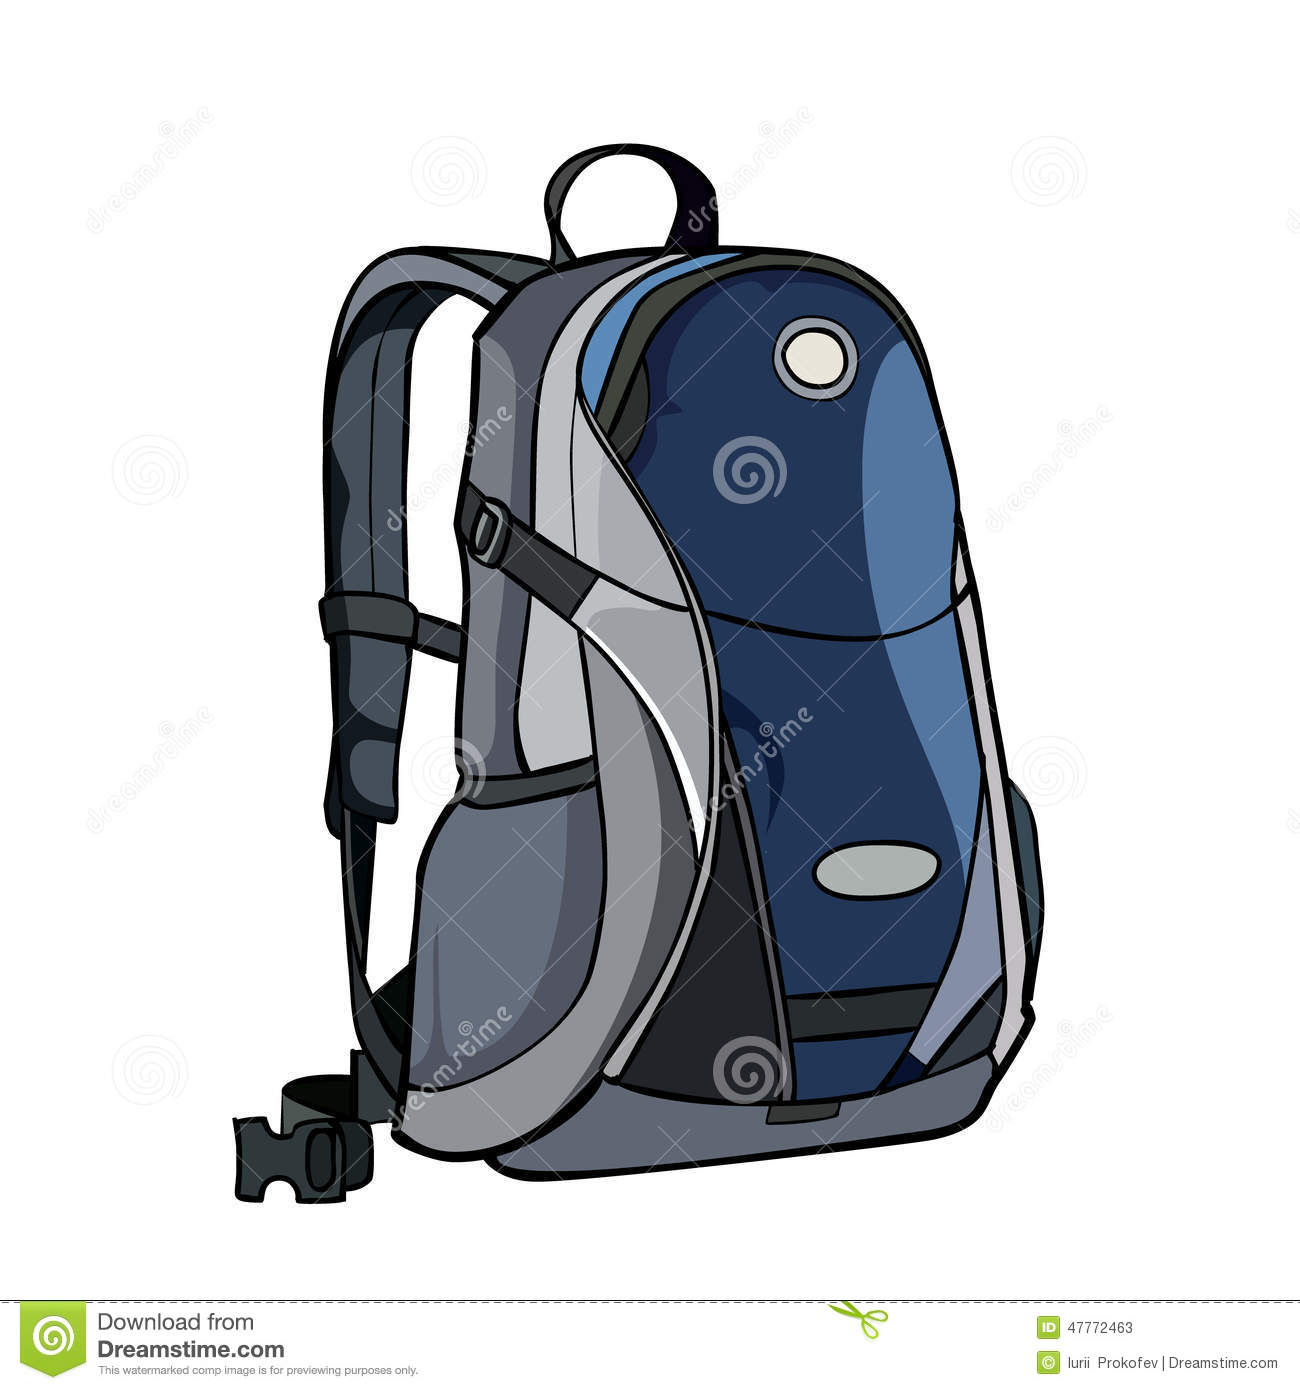 Painted Backpack Stock Illustrations – 227 Painted Backpack Stock  Illustrations 35e7c58b9dab7